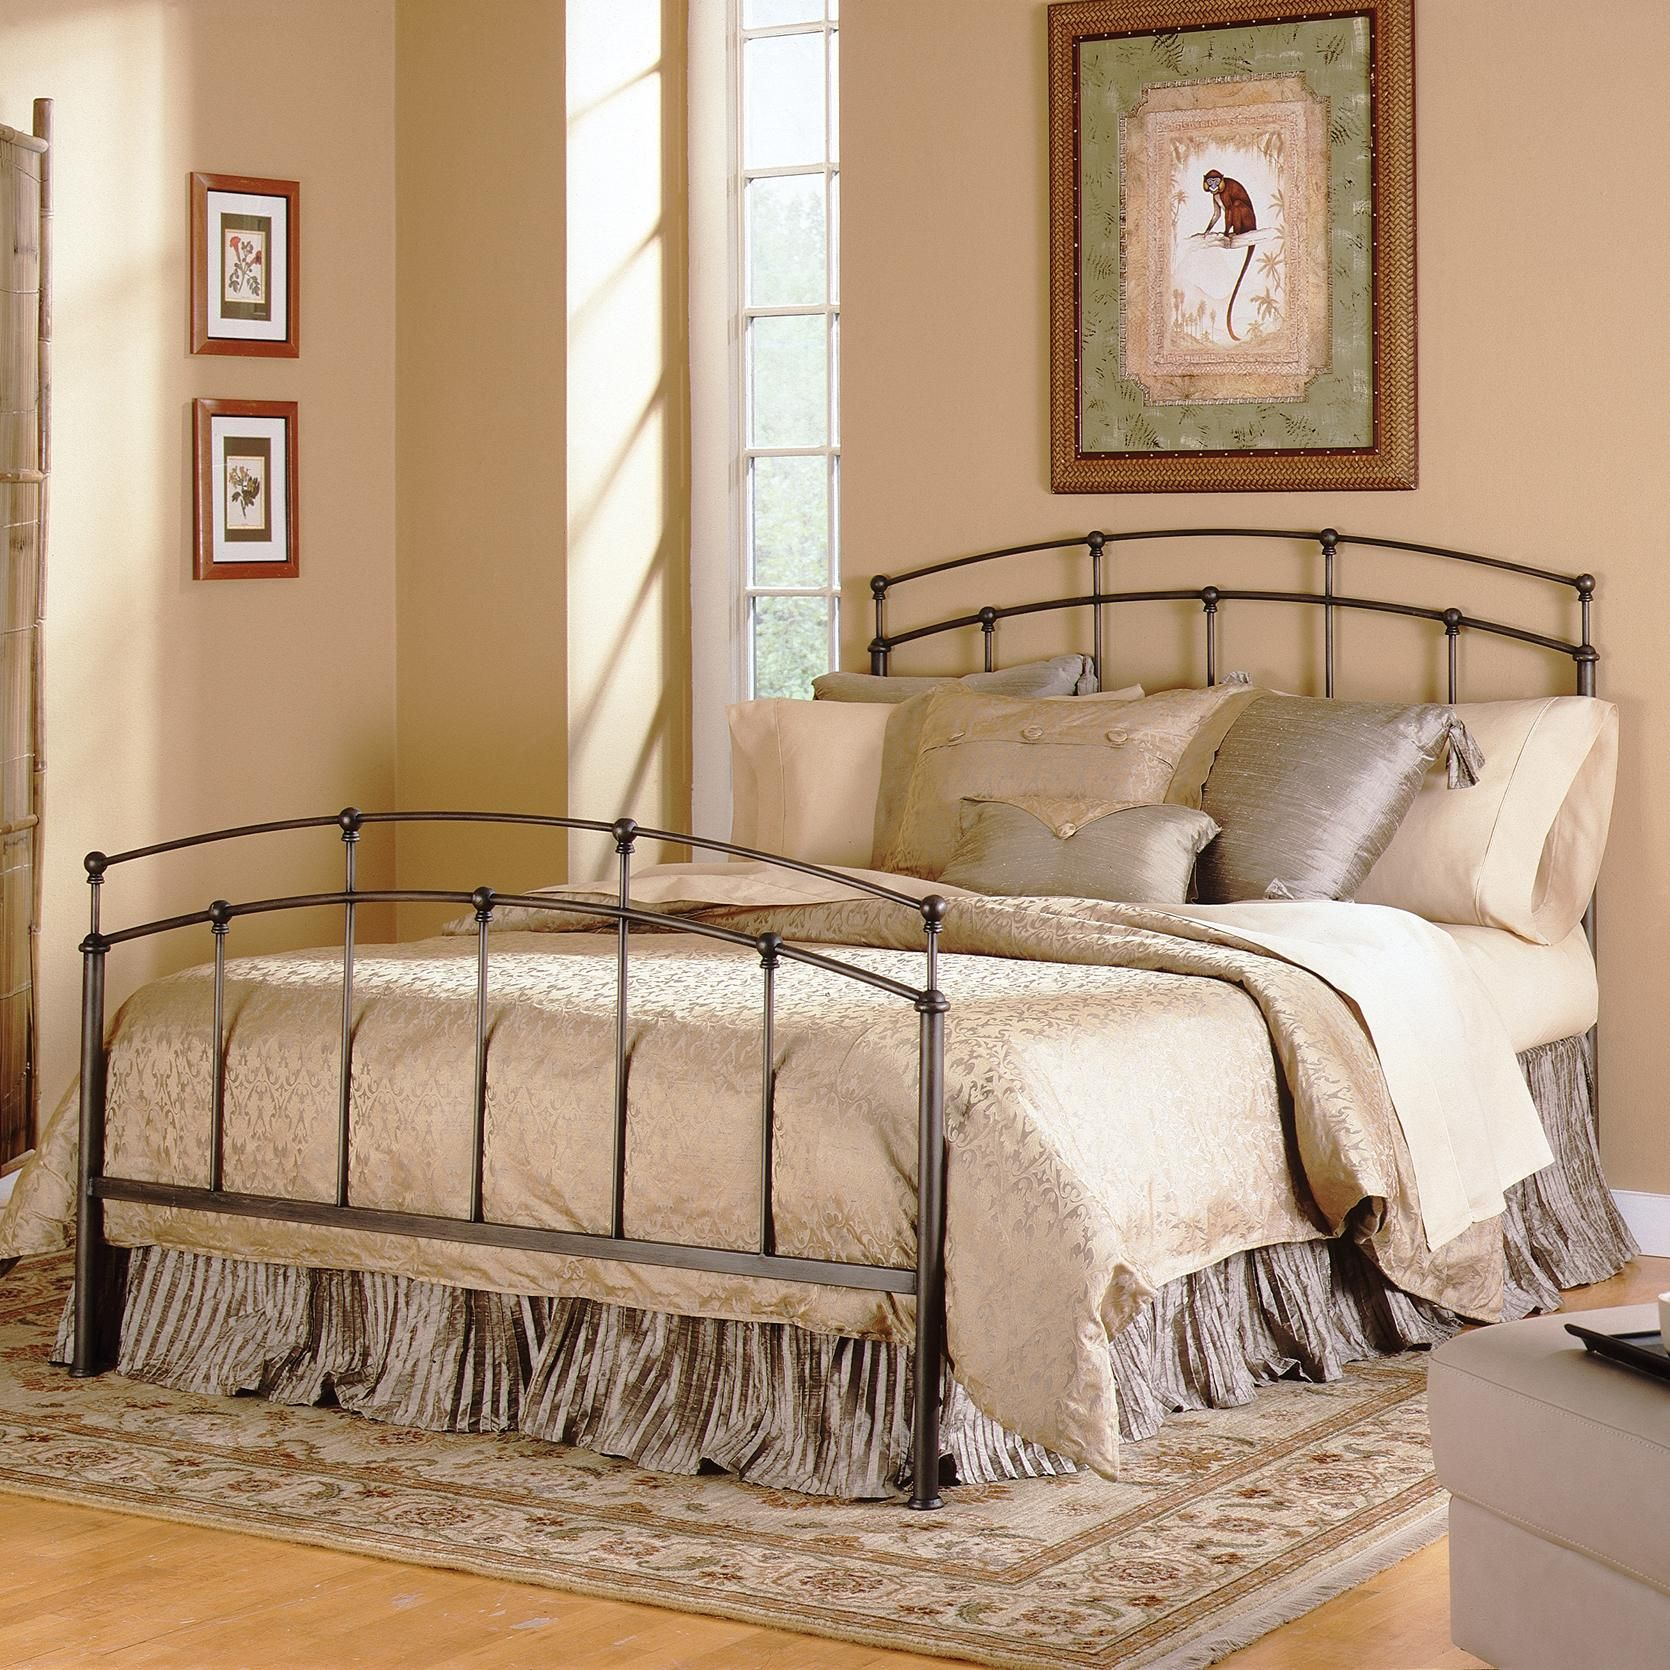 Metal Beds Queen Fenton Metal Bed by Fashion Bed Group